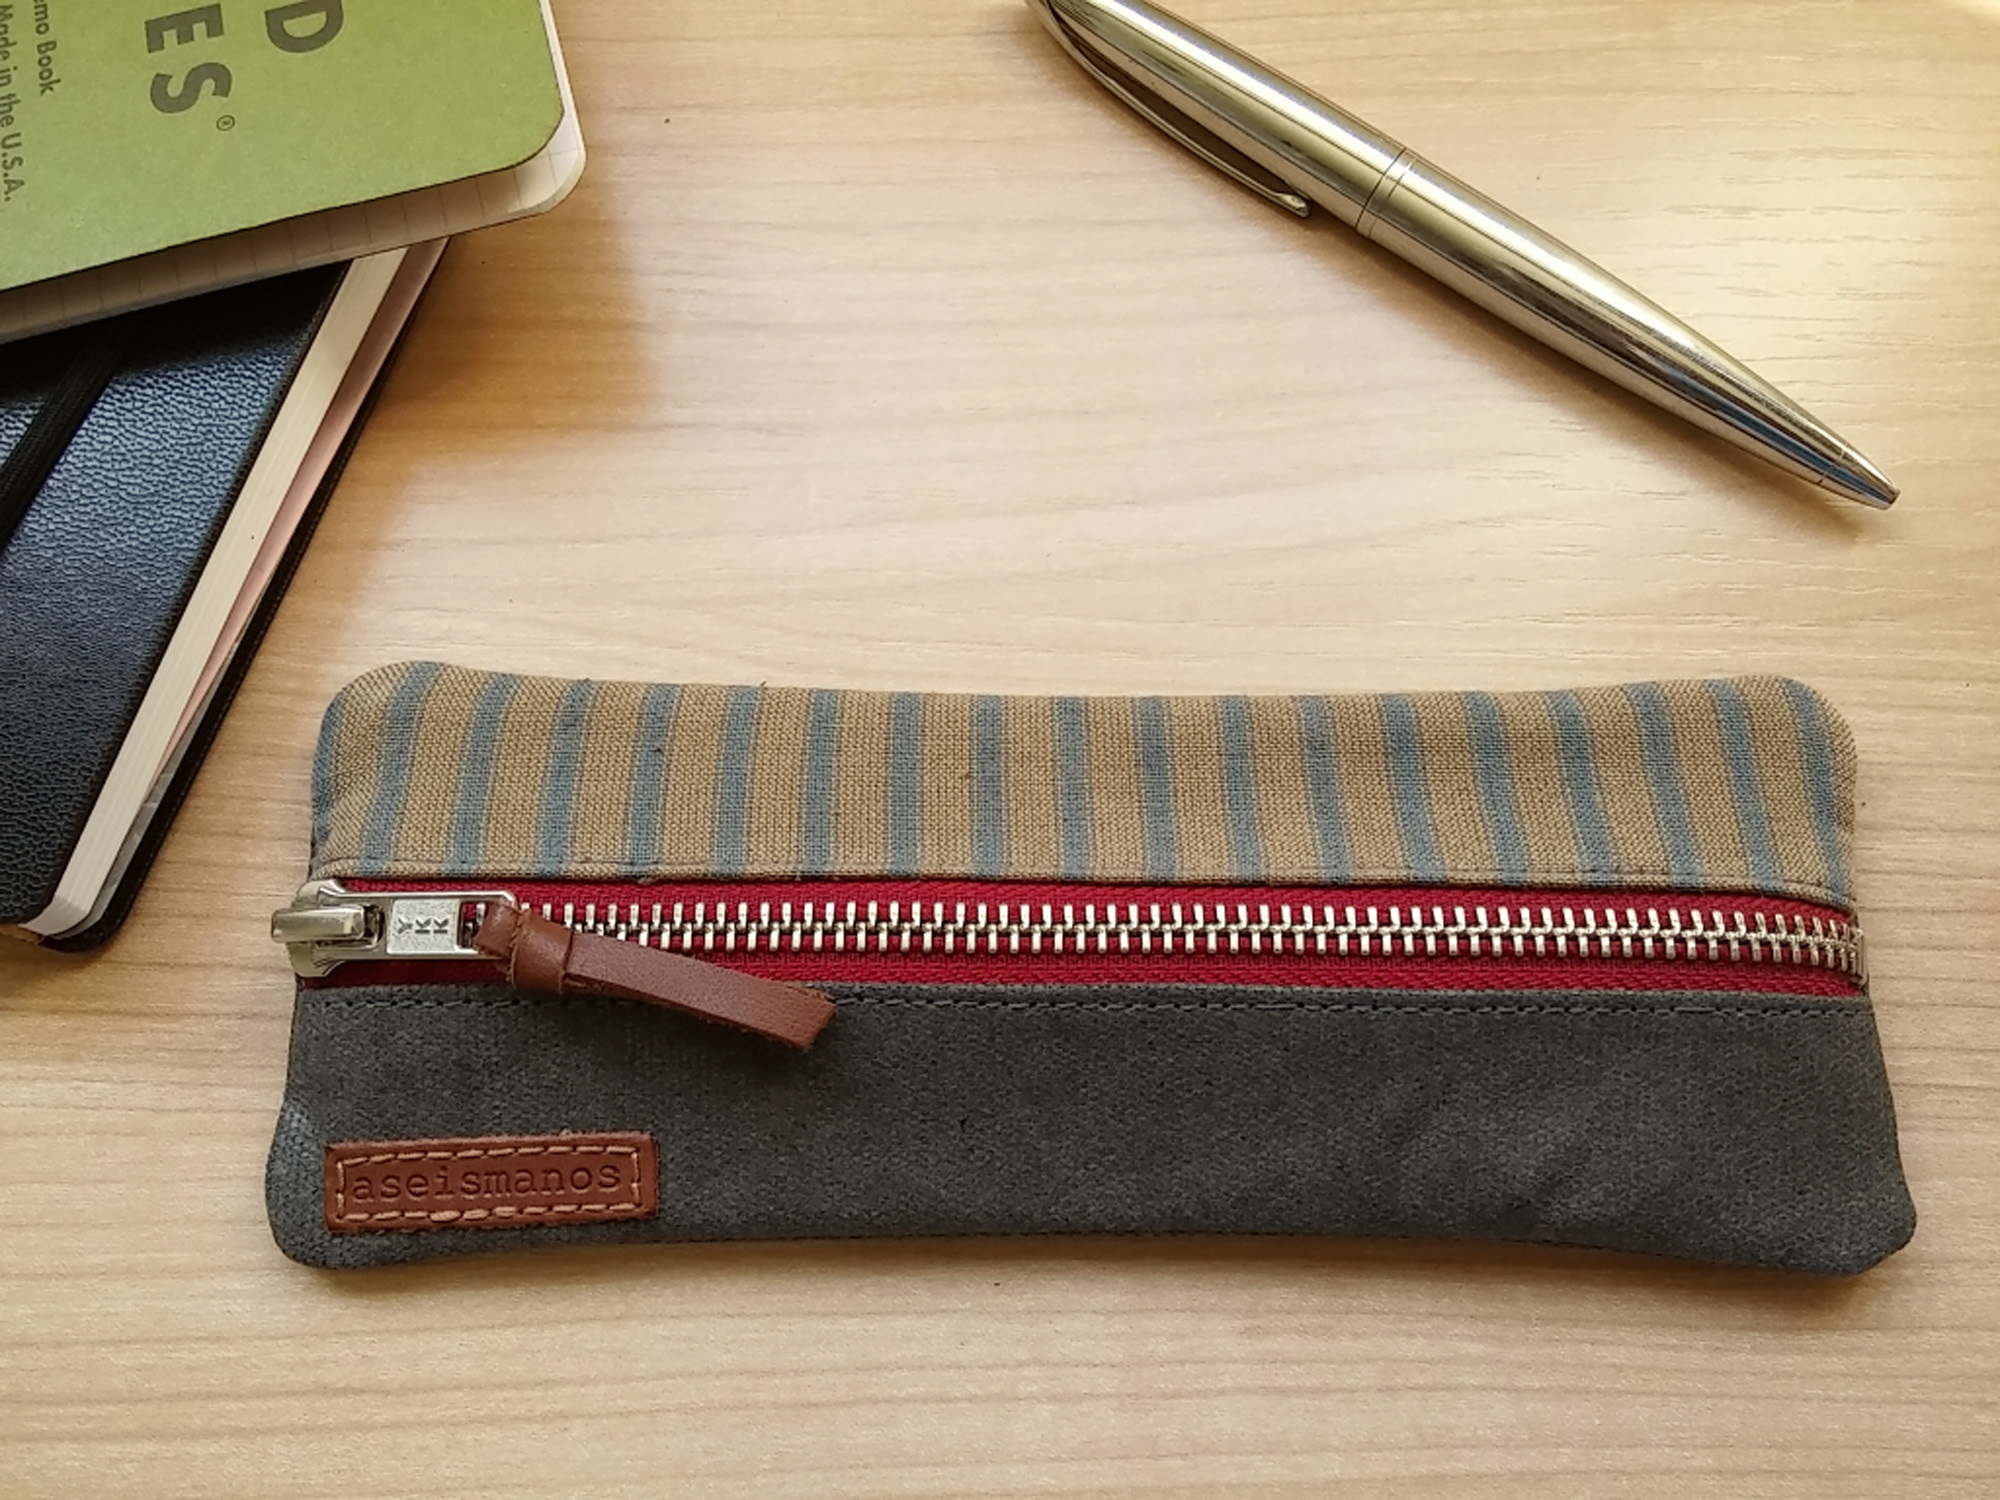 In-flight-gear-Small-pencil-pouch-grey-stripes.jpg?mtime=20190227152751#asset:105012